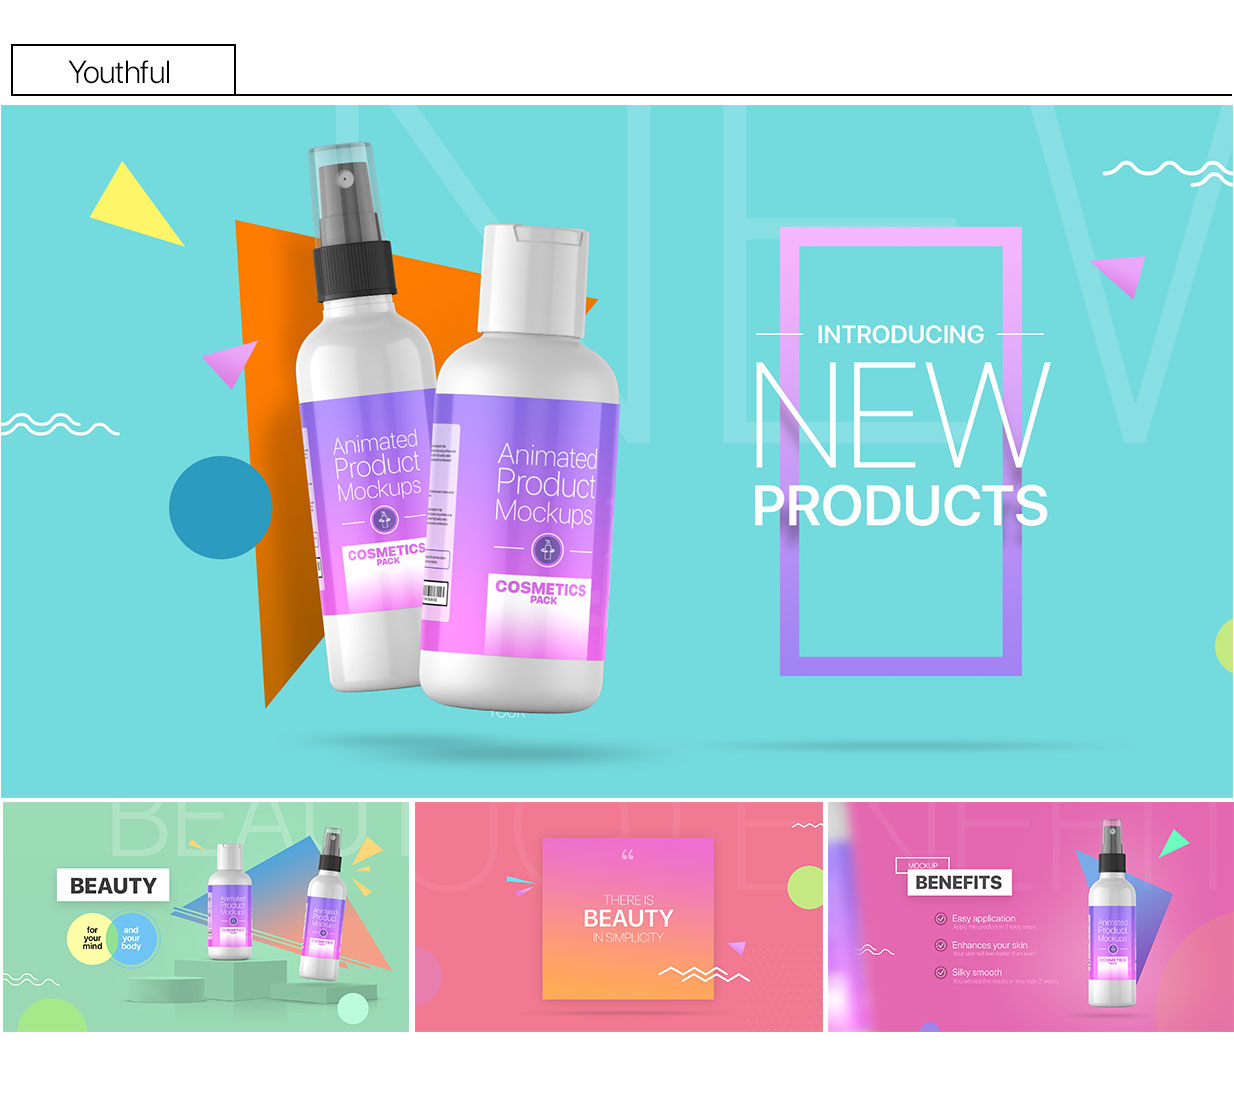 Animated Product Mockups - Cosmetics Pack - 8